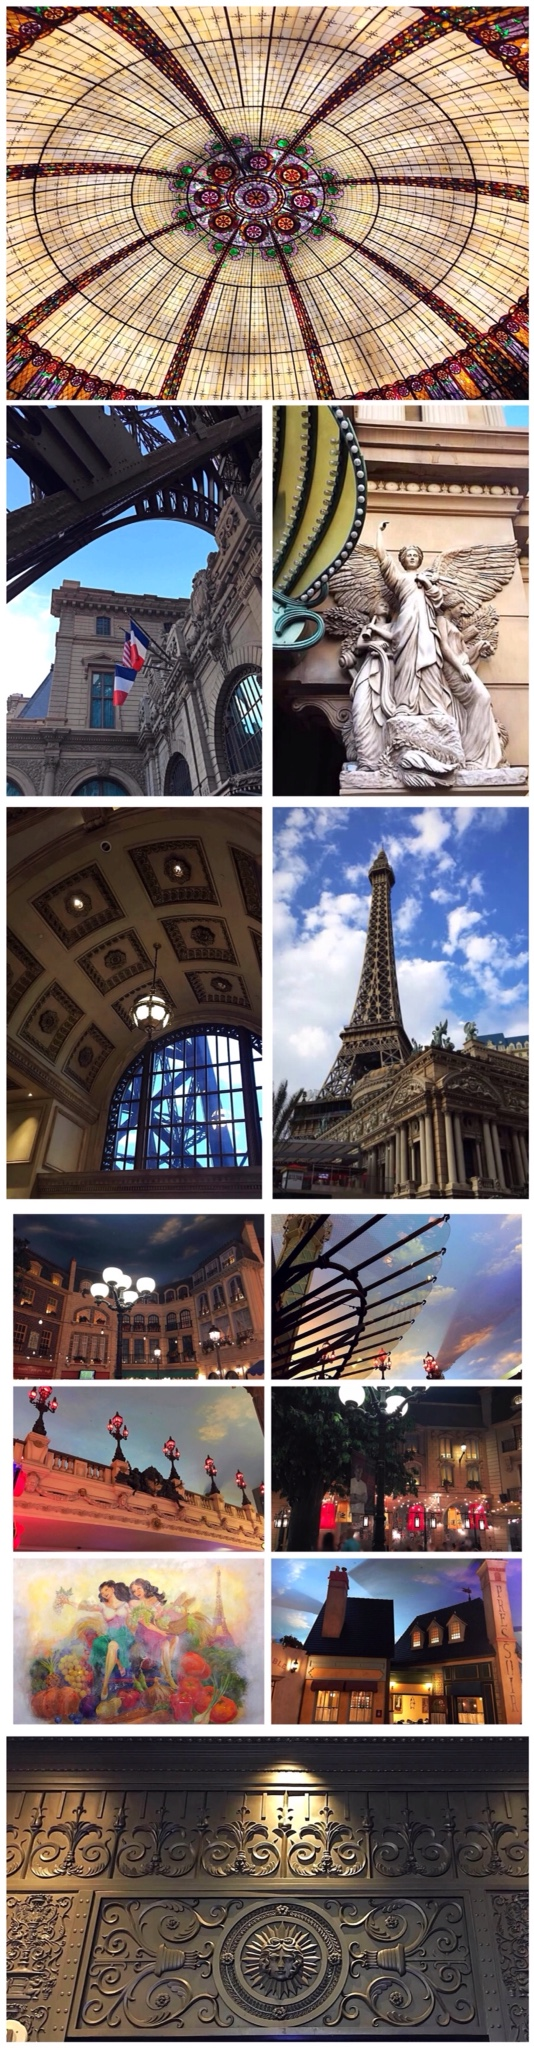 Paris Las Vegas photo montage (Attached)